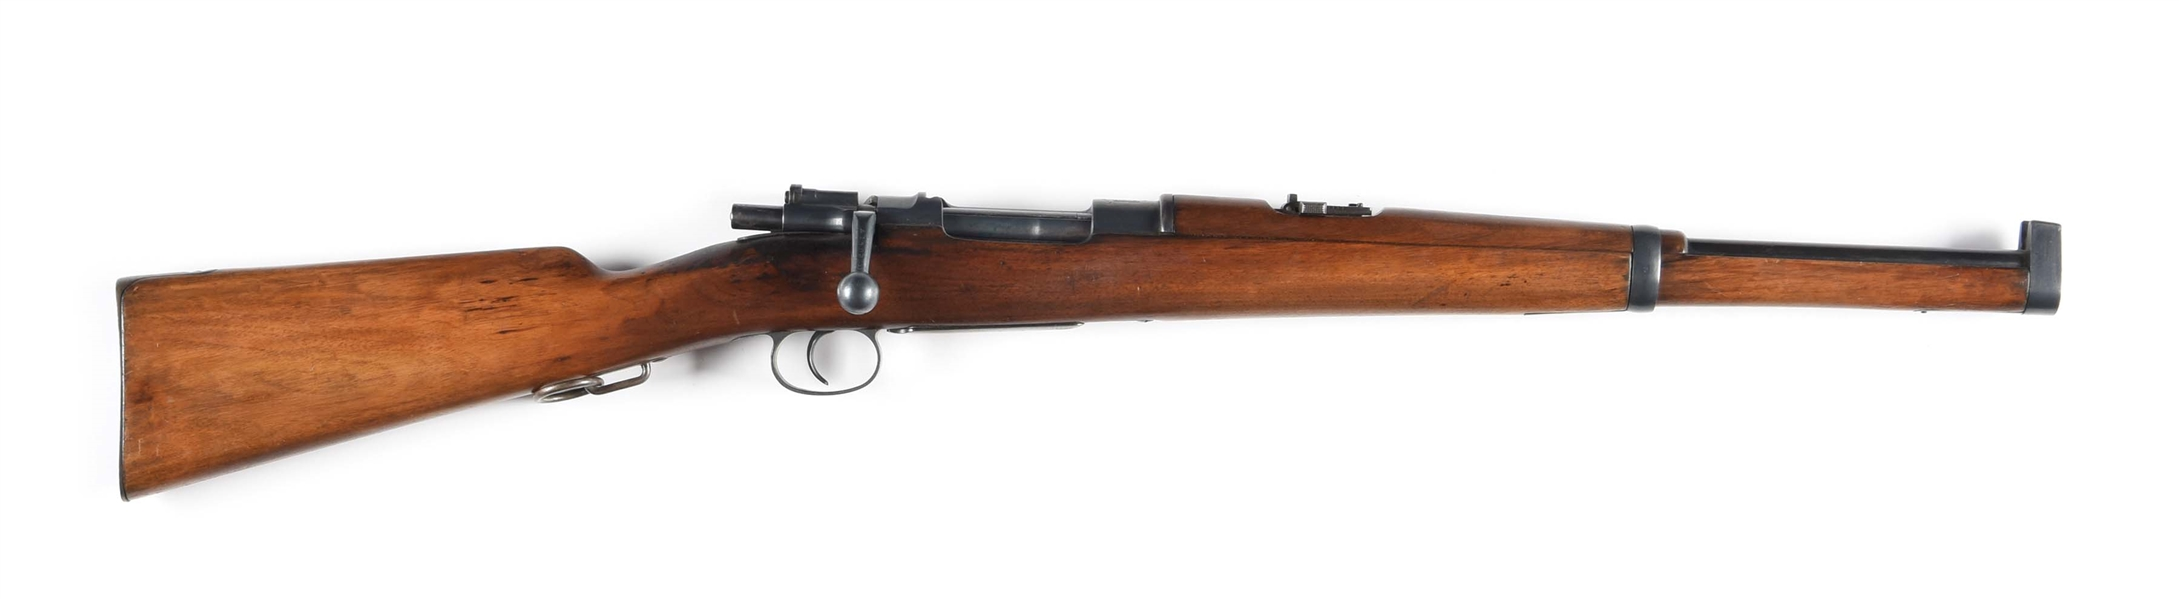 Lot Detail - (A) Spanish Mauser Model 1893 Carbine, Loewe Dated 1894